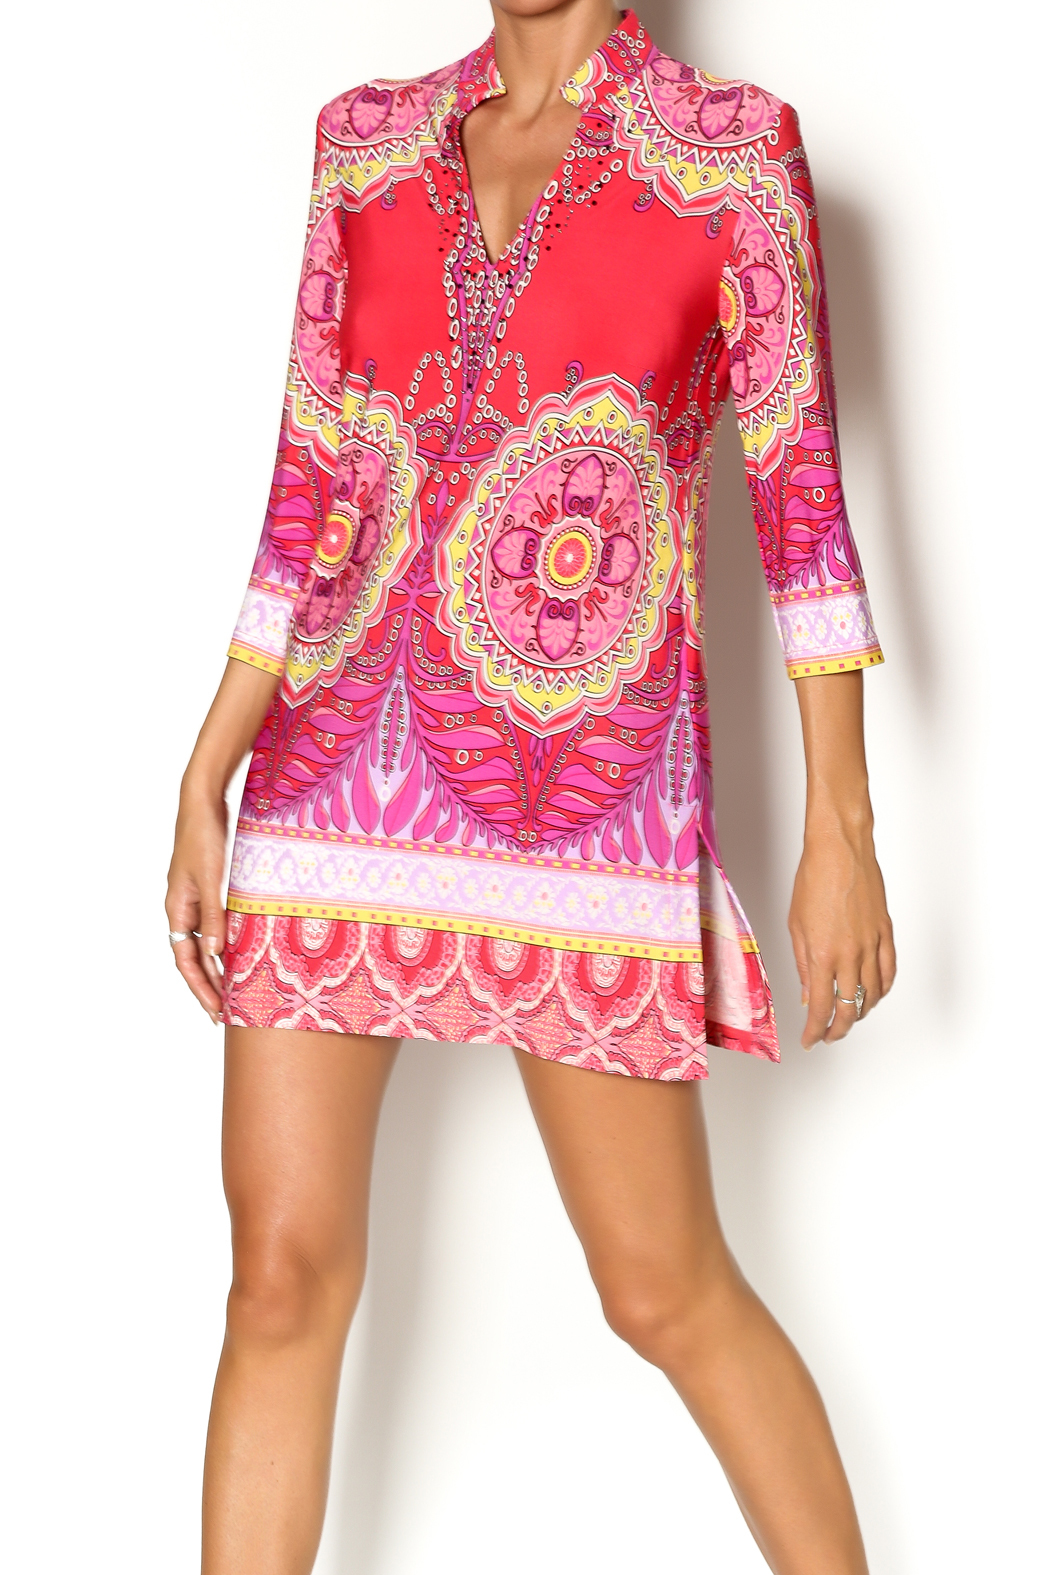 85a0a5b68d87 Joseph Ribkoff Printed Embellished Tunic from Vancouver by Jet-Lag ...